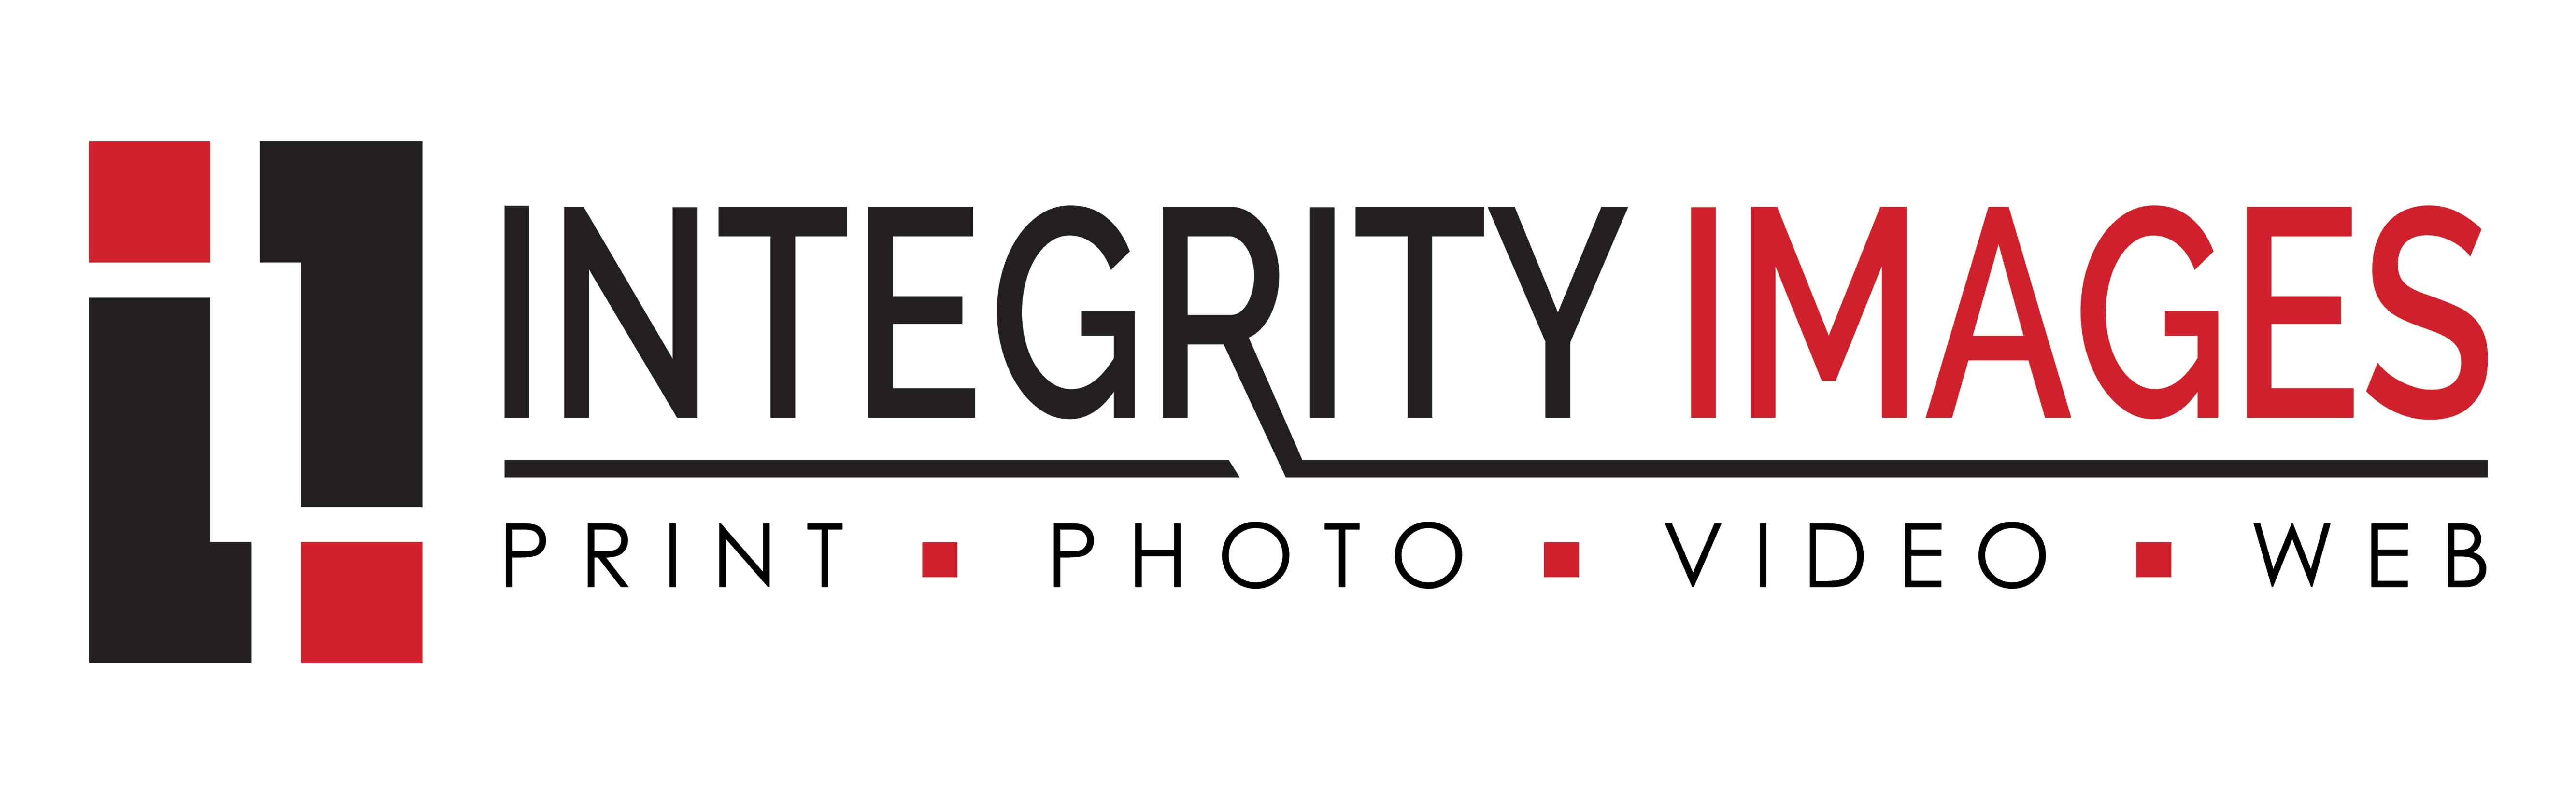 Integrity Images Logo